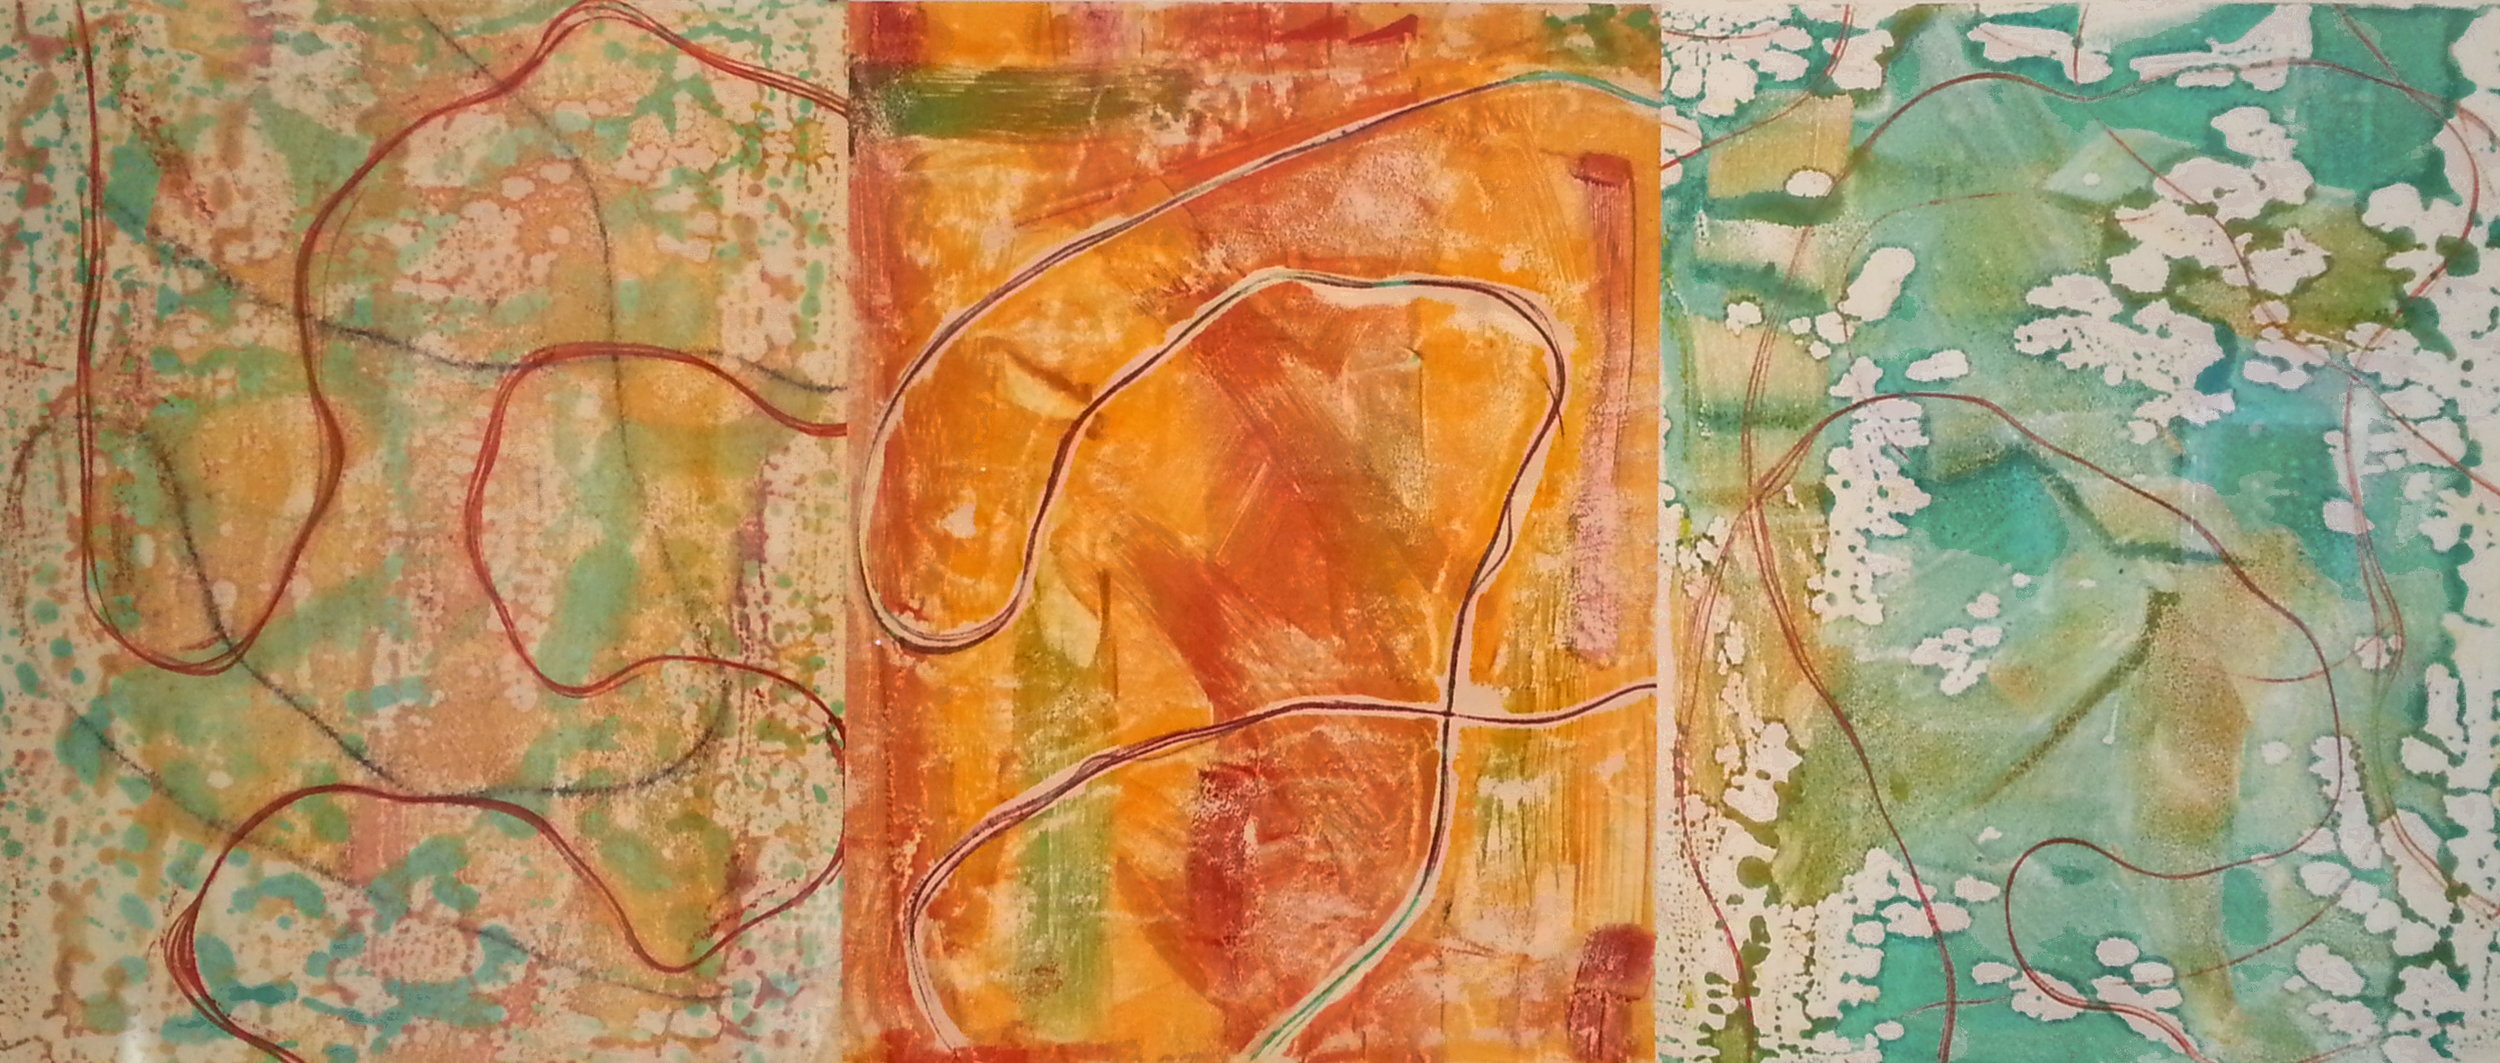 Line Work Sequence #4, 2016, Encaustic monotypes on various papers, 14 x 33""